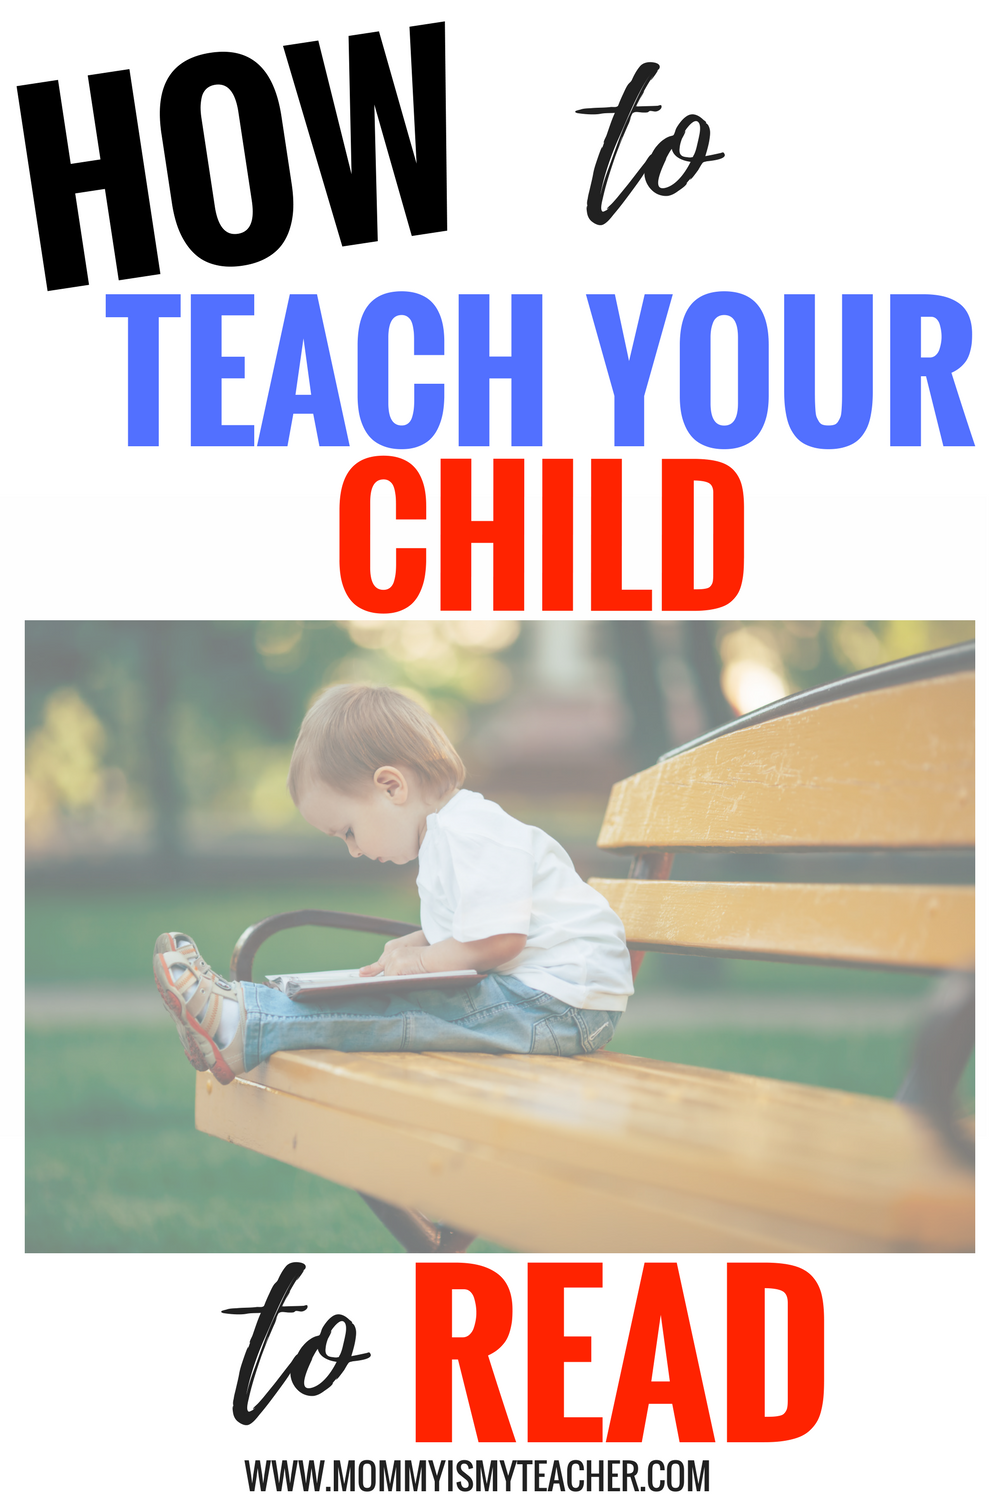 teach your child to read.png